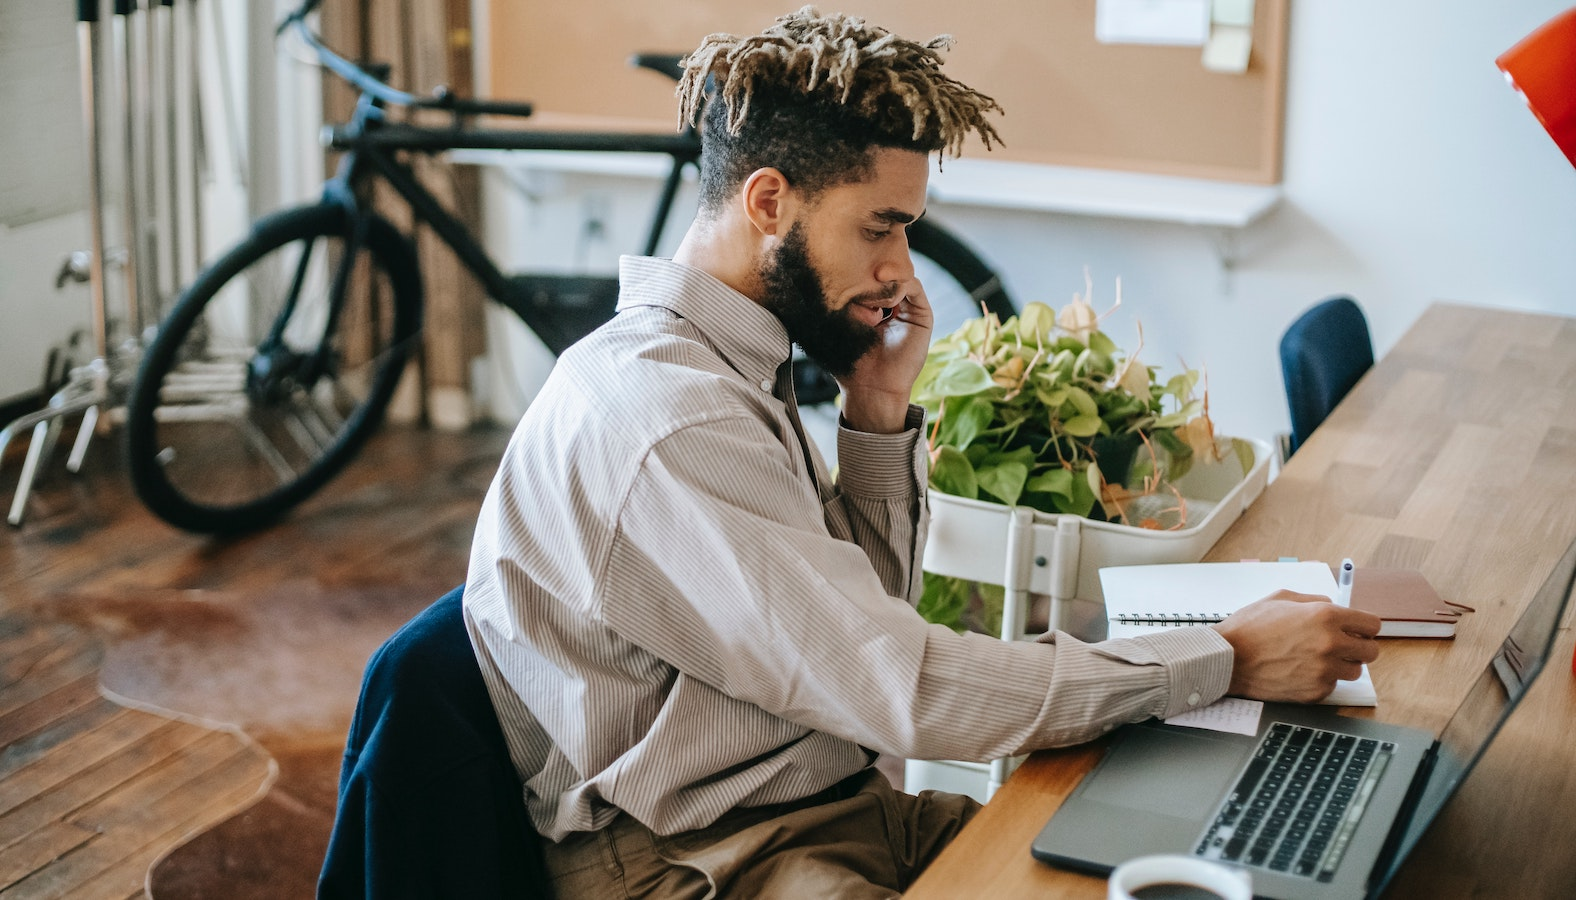 A man working on a laptop while talking on the phone.